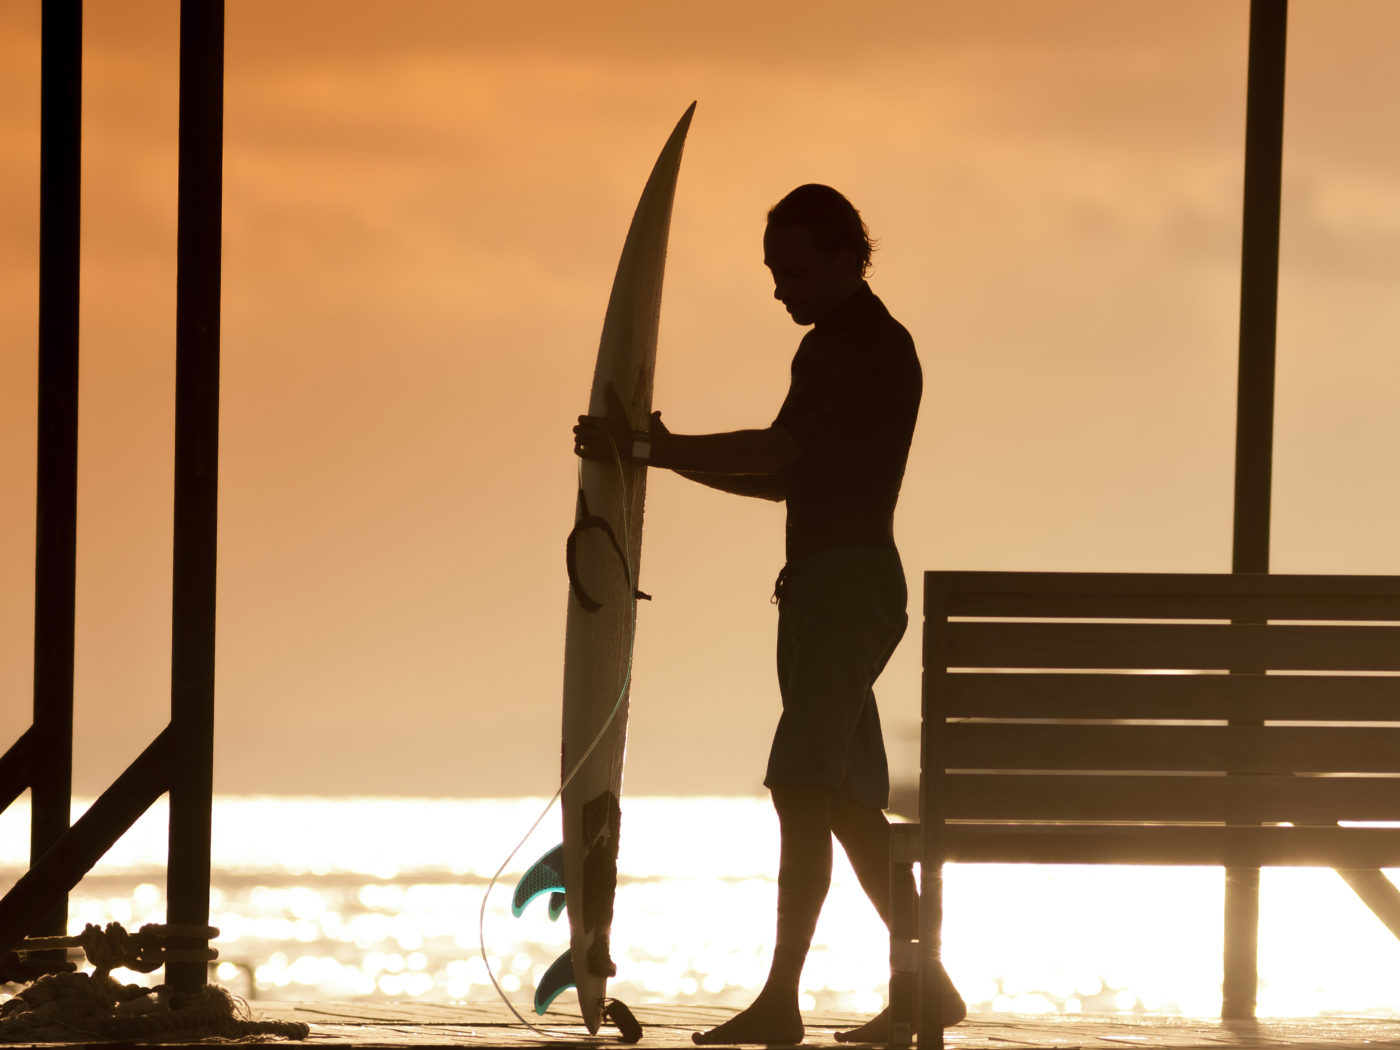 Surfer  with a surfboard at Sunset Tme, Bali, Indonesia released